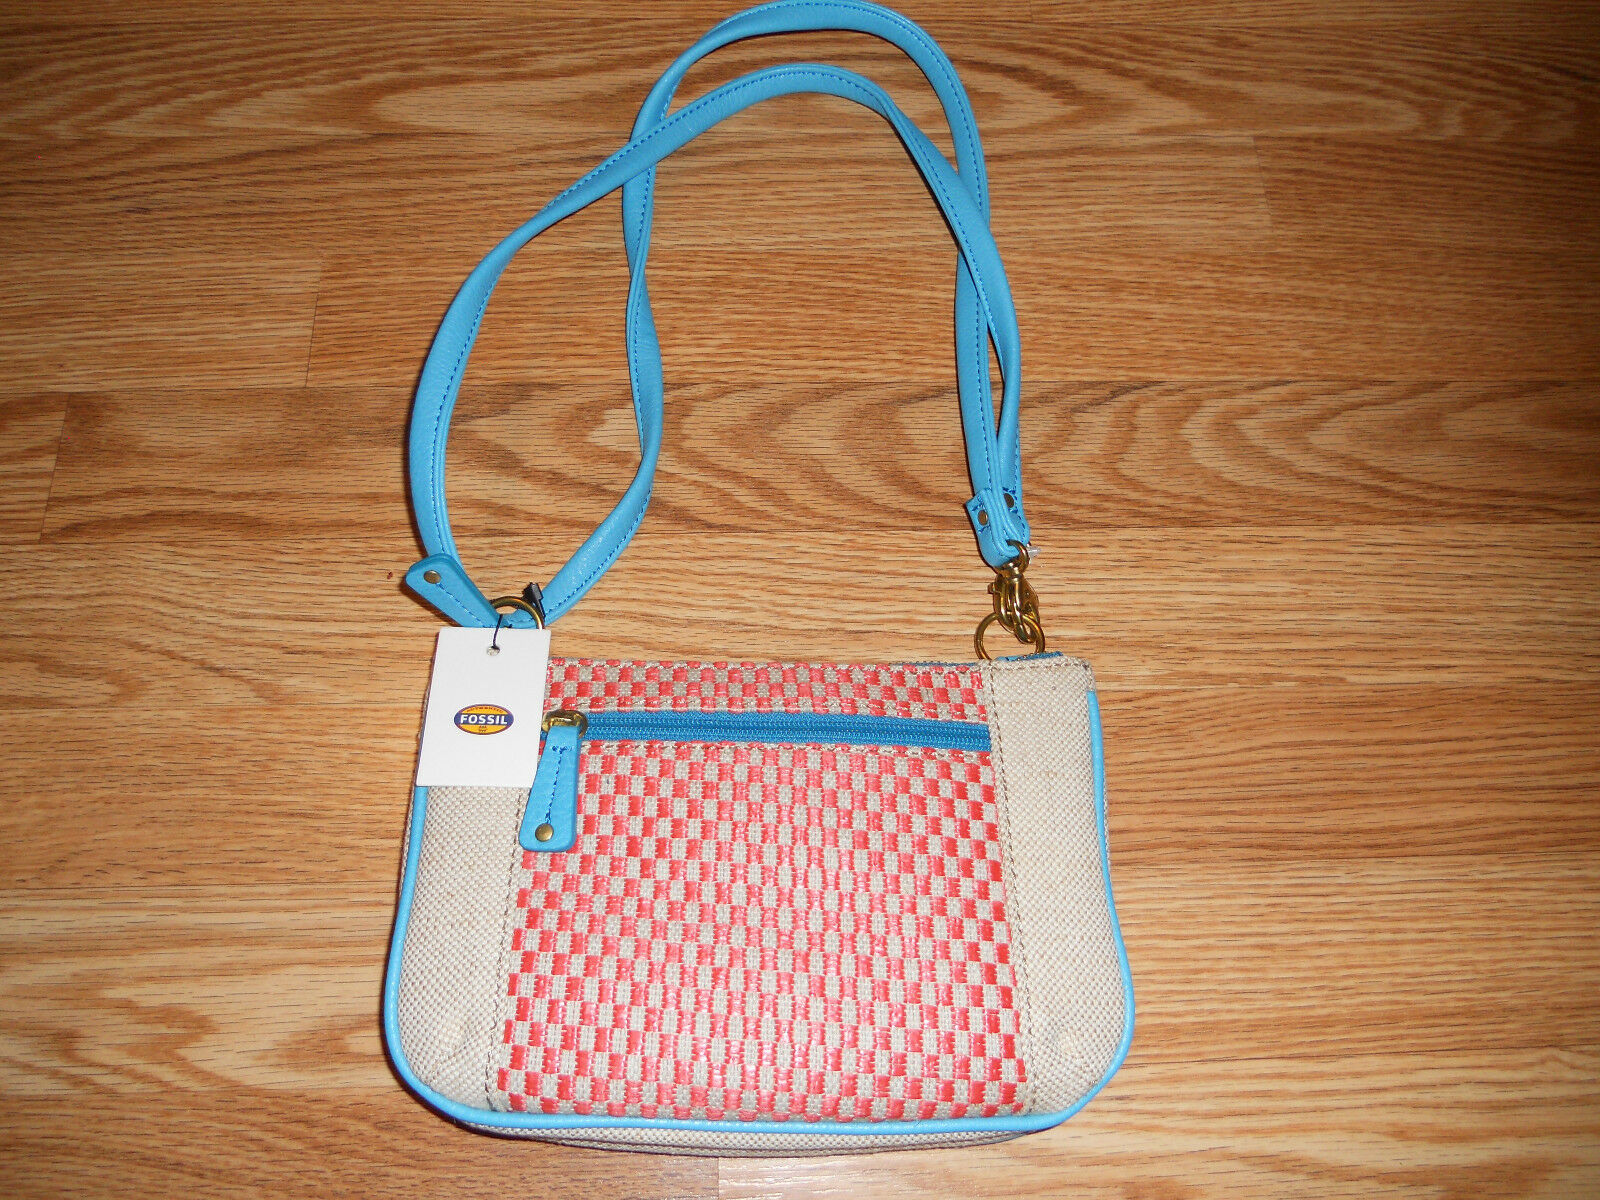 Fossil Kira Top Zip Coral Multi Mini Shoulder Bag Ebay Keely Tote Canvas Norton Secured Powered By Verisign